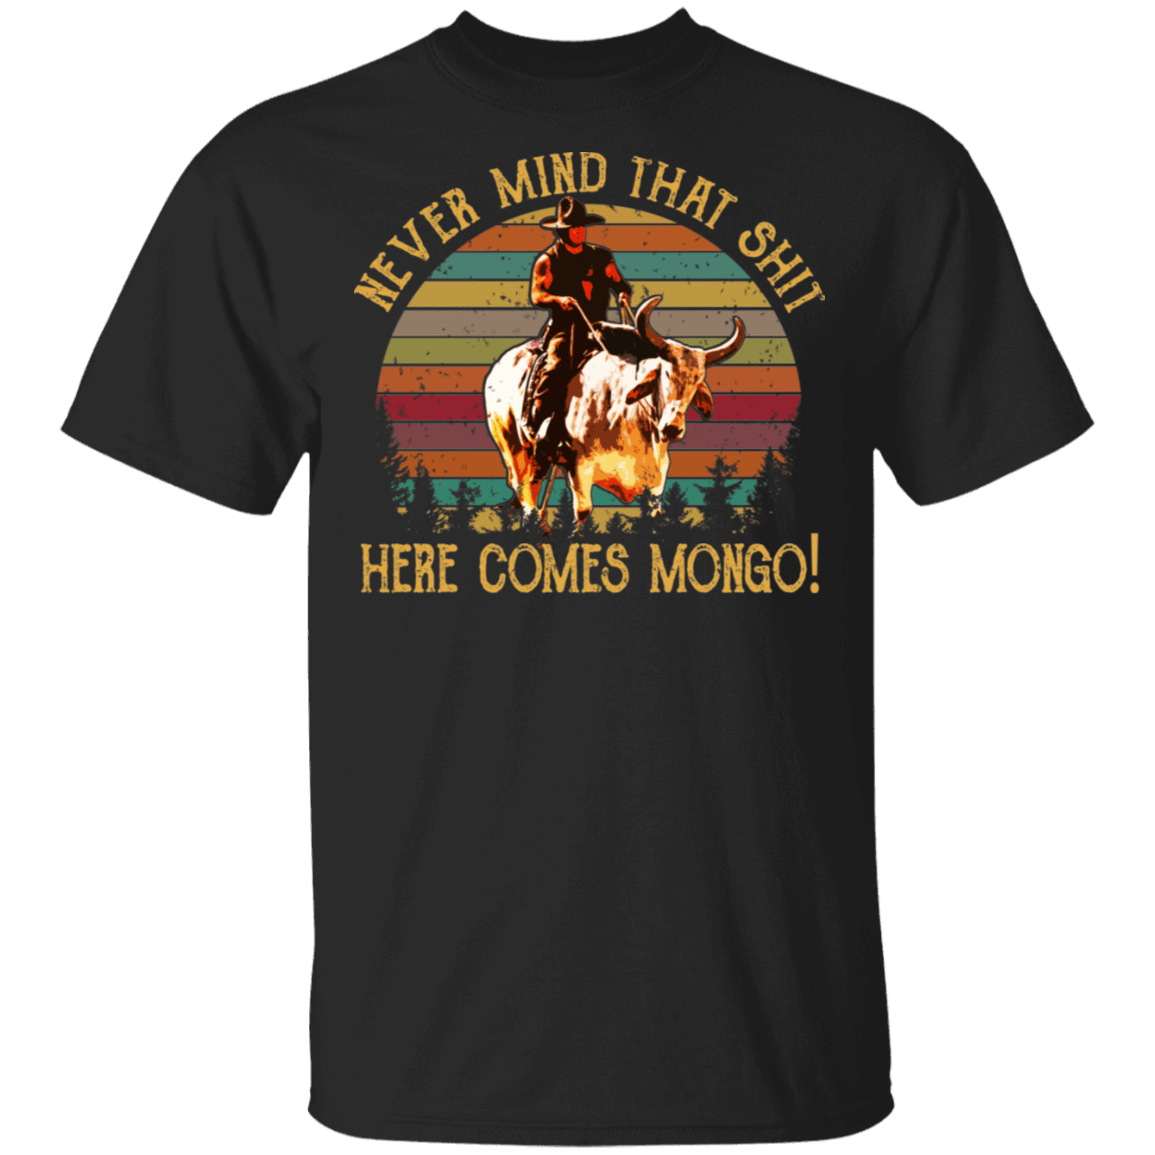 Blazing Saddles Never Mind That Shit Here Comes Mongo T-Shirts, Hoodies, Tank 22-113-79658447-252 - Tee Ript